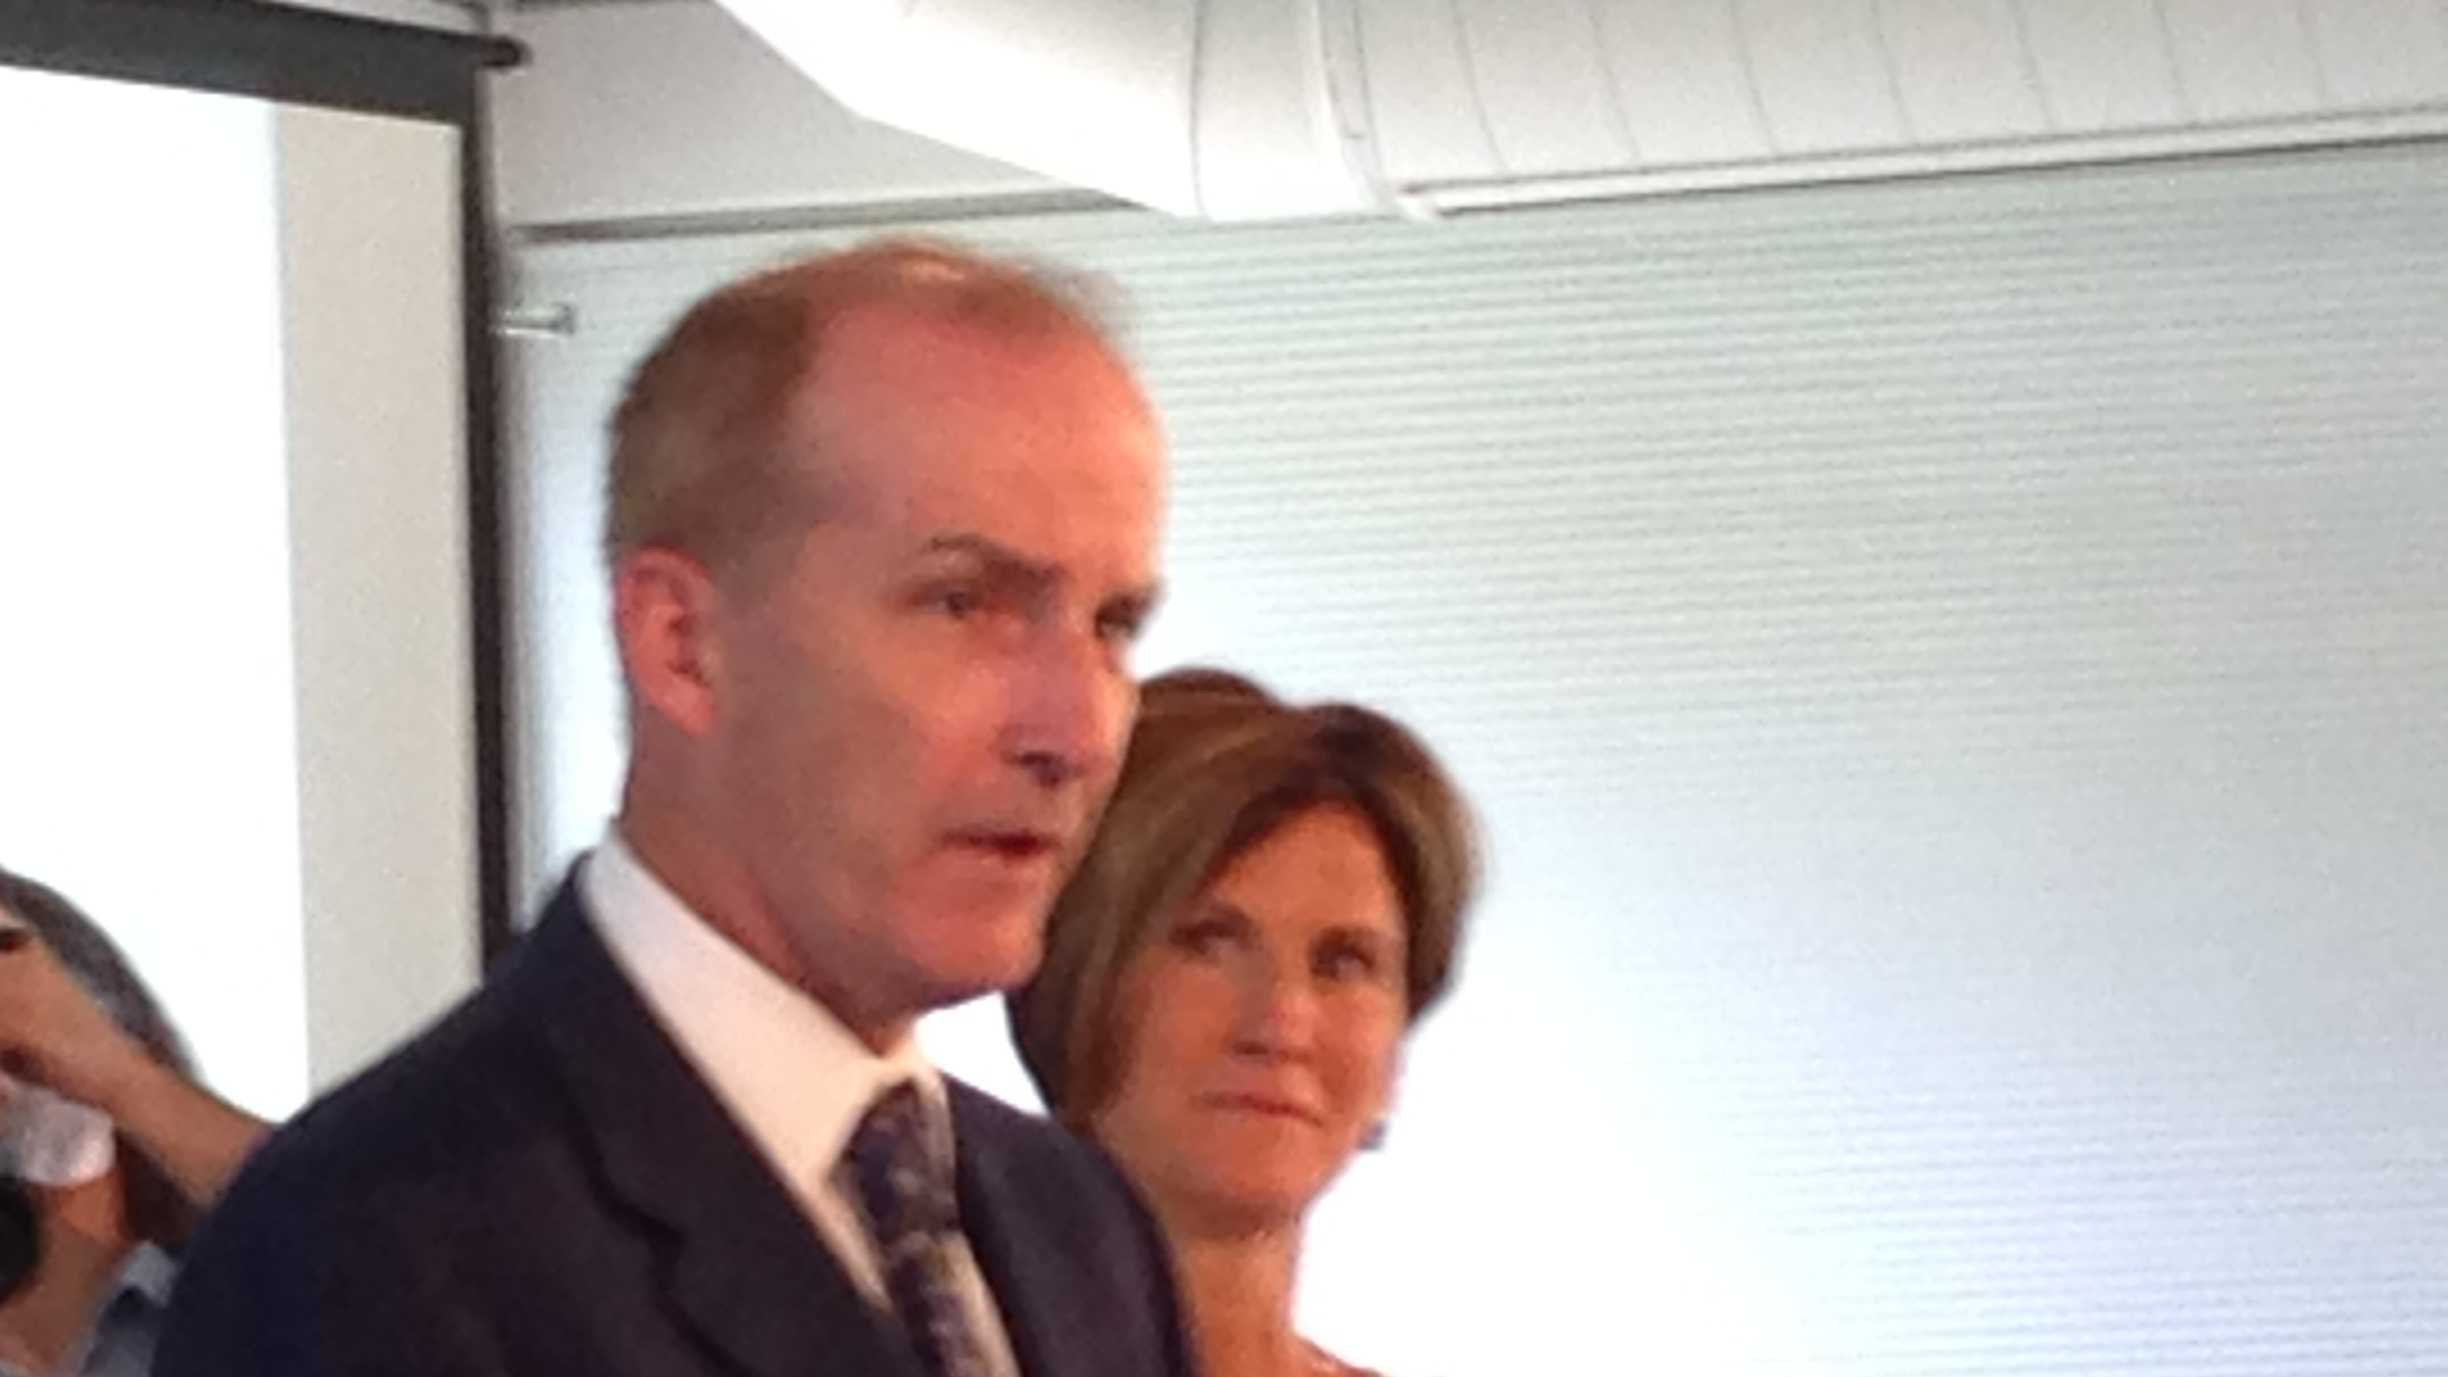 NRG Energy CEO David Crane and GMP CEO Mary Powell speak at a news conference Tuesday in Essex.